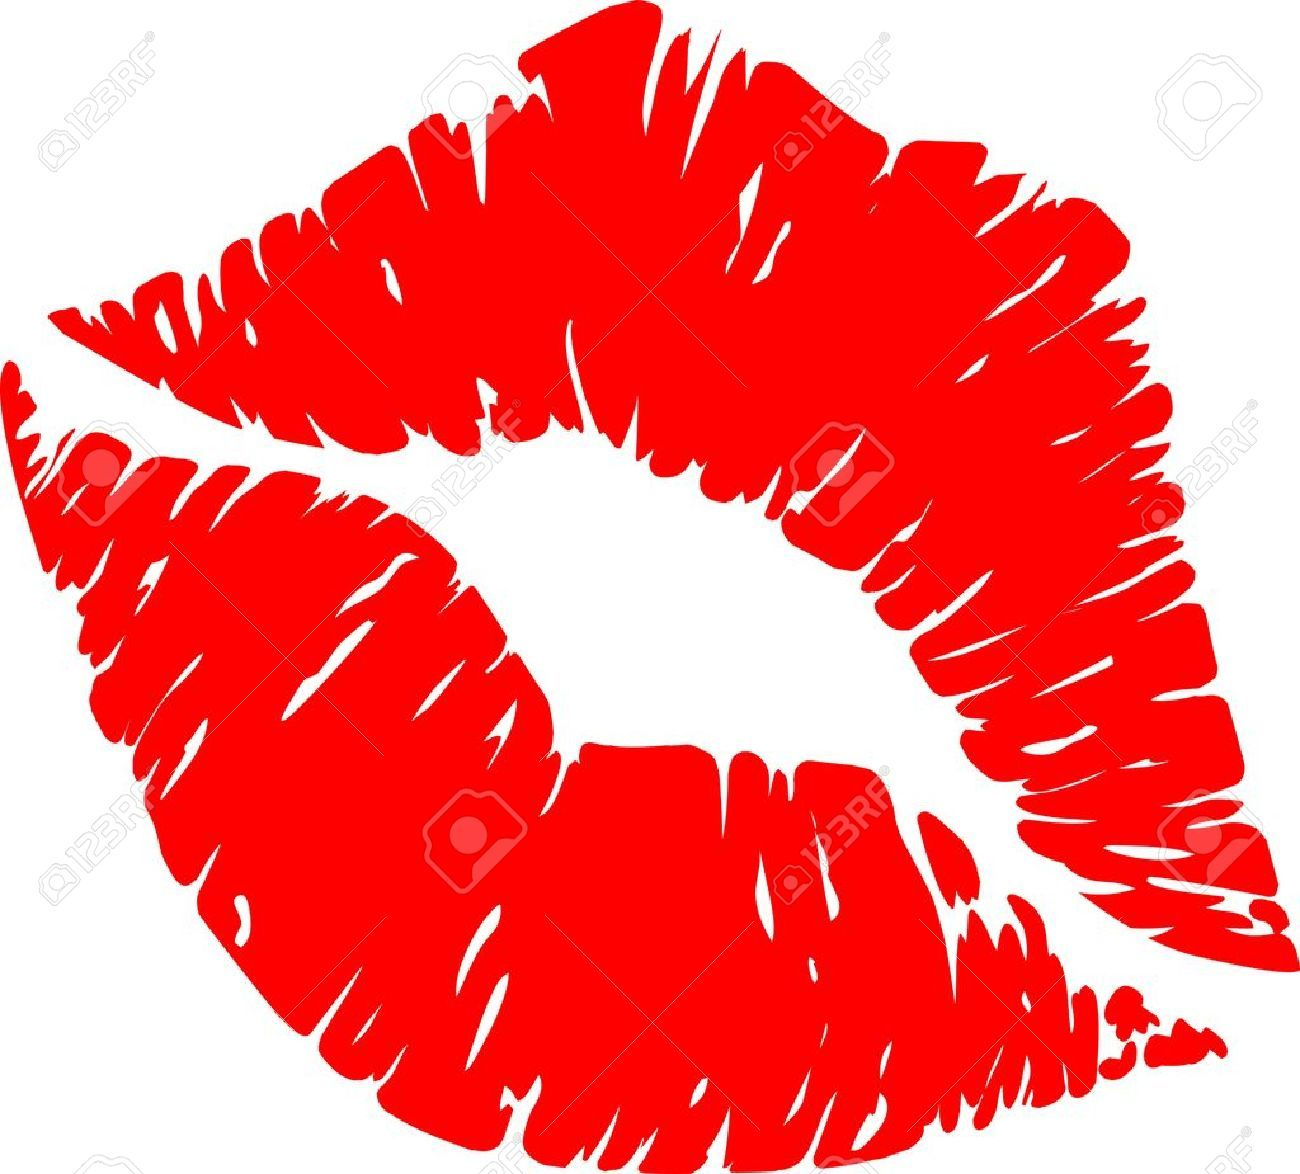 Red lips kiss clipart.